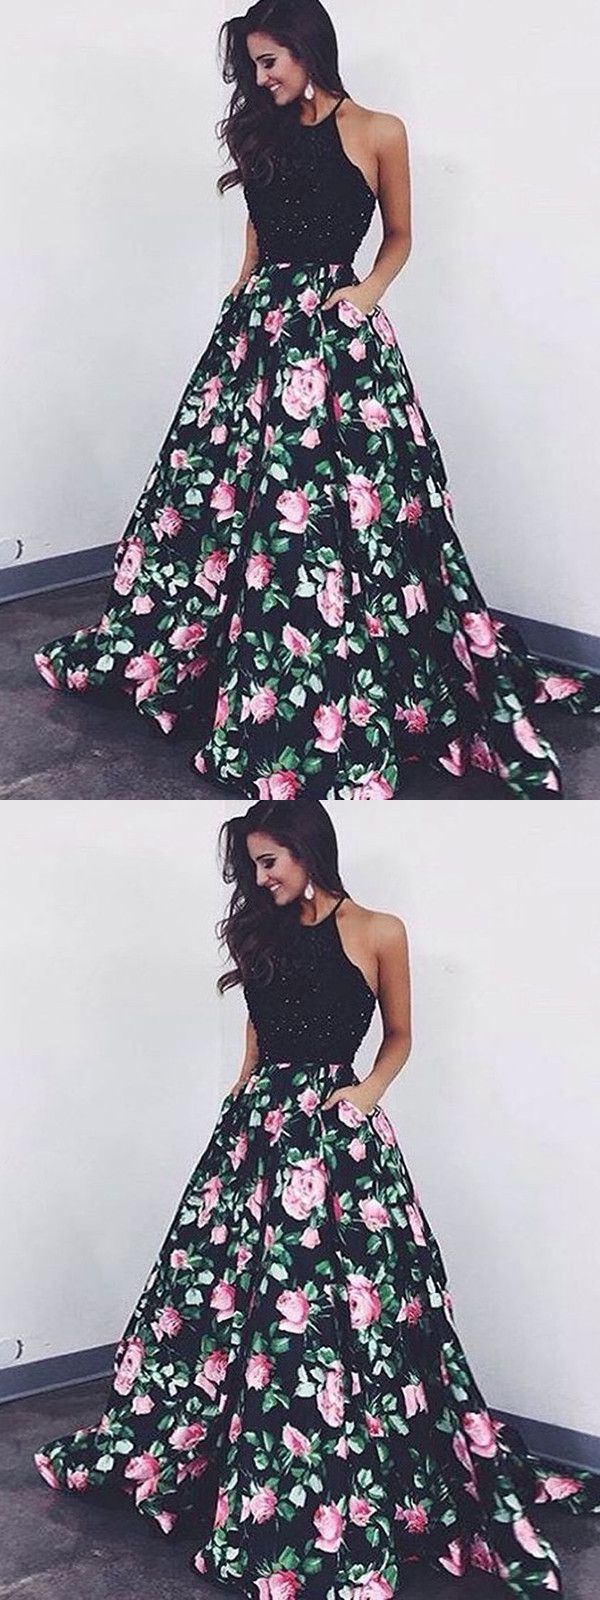 Chic a line prom dress modest beautiful black floral cheap long prom